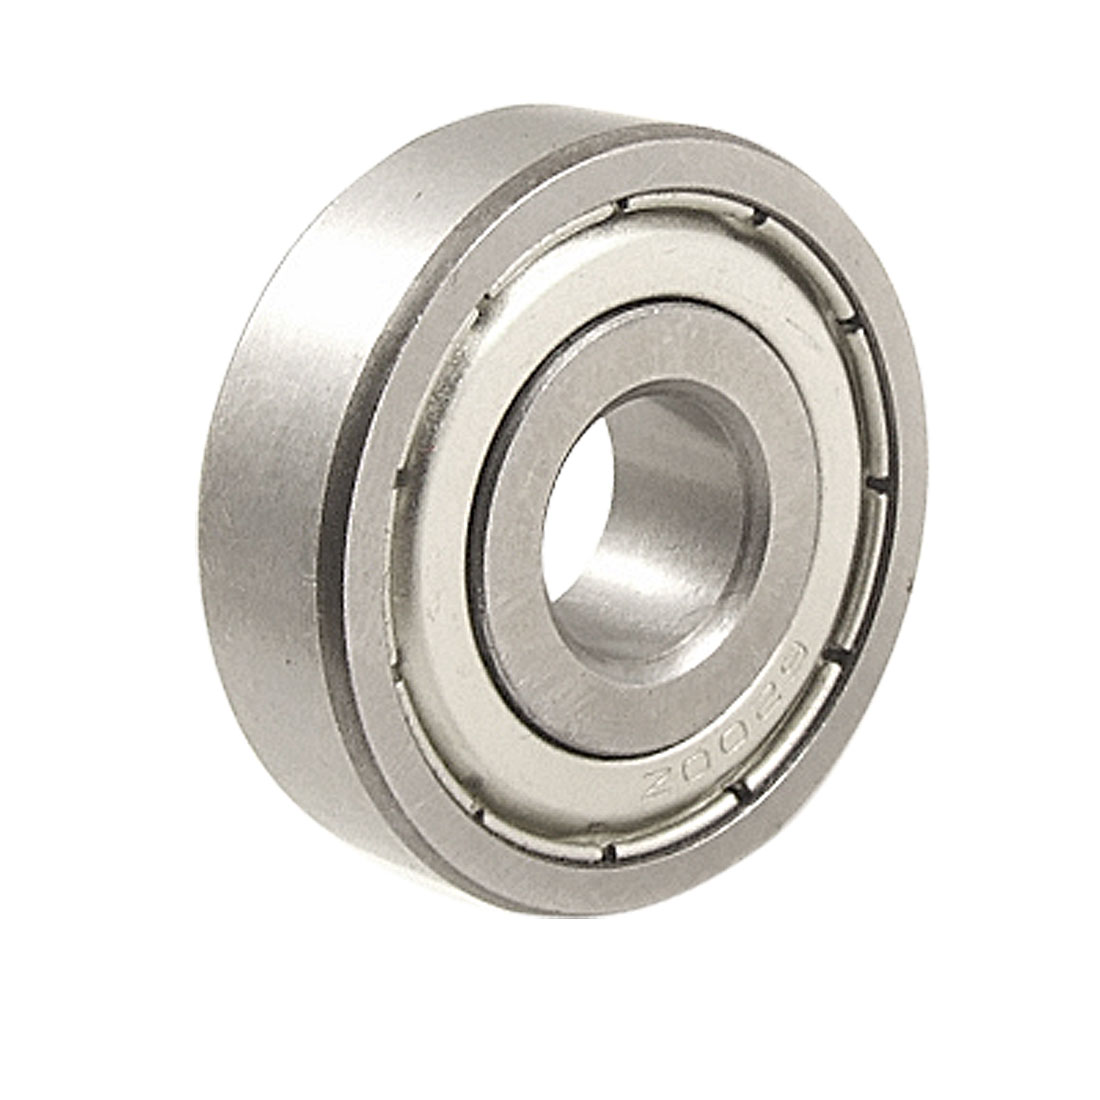 6200Z 10mm x 30mm x 9mm Double Shielded Ball Bearing